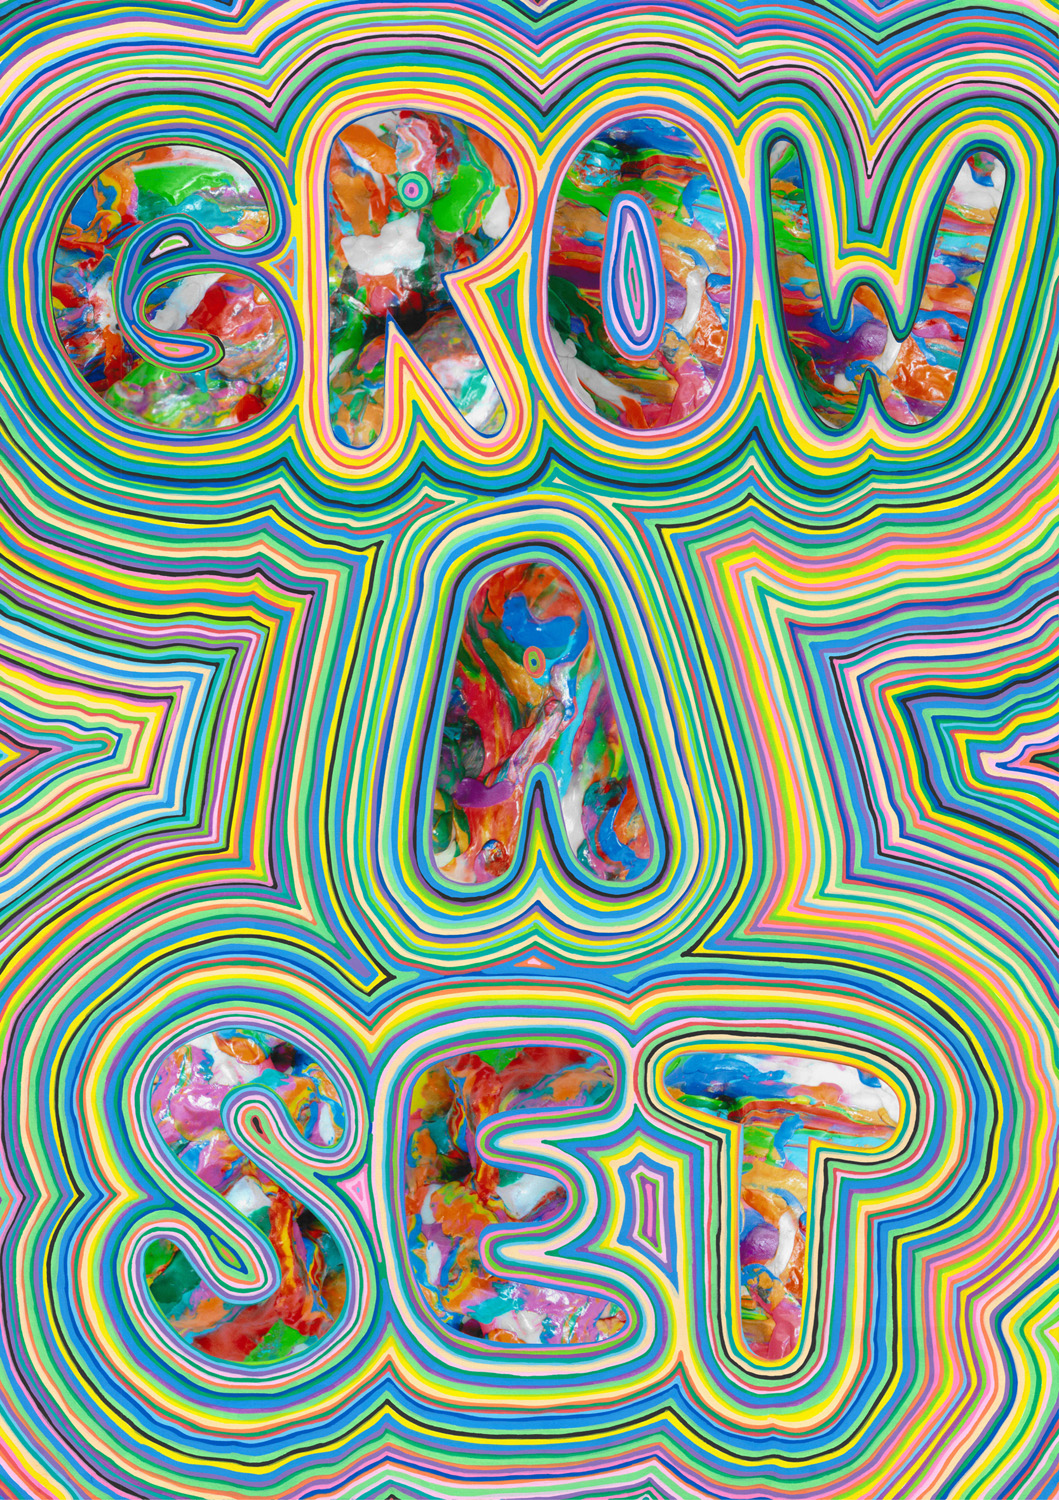 Grow A Set (2012), photo and acrylic on paper, 59.4 x 42 cm